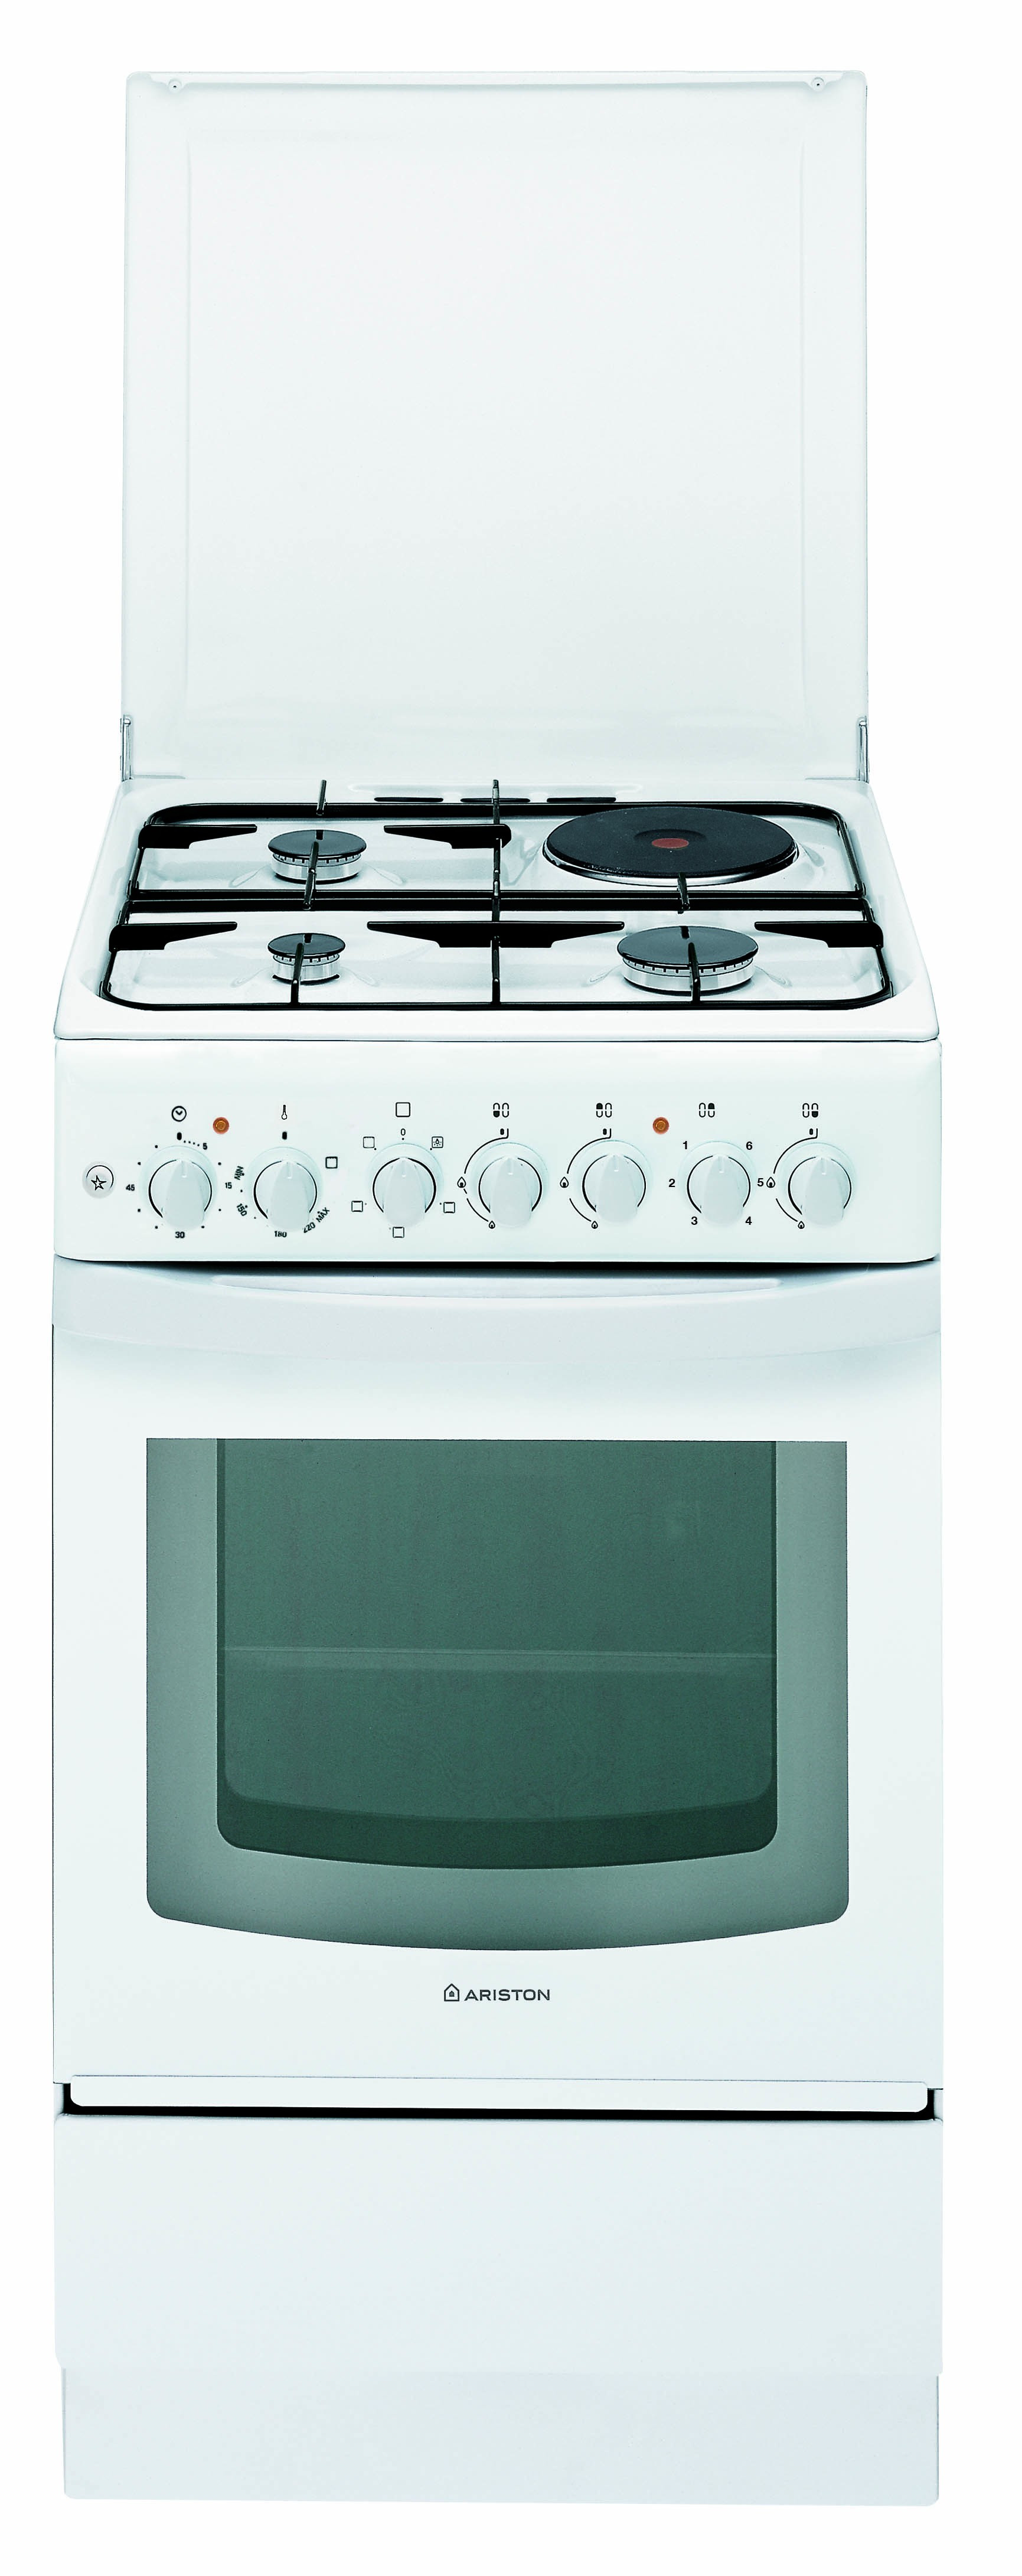 ARISTON 3GAS & 1ELECTRIC COOKER